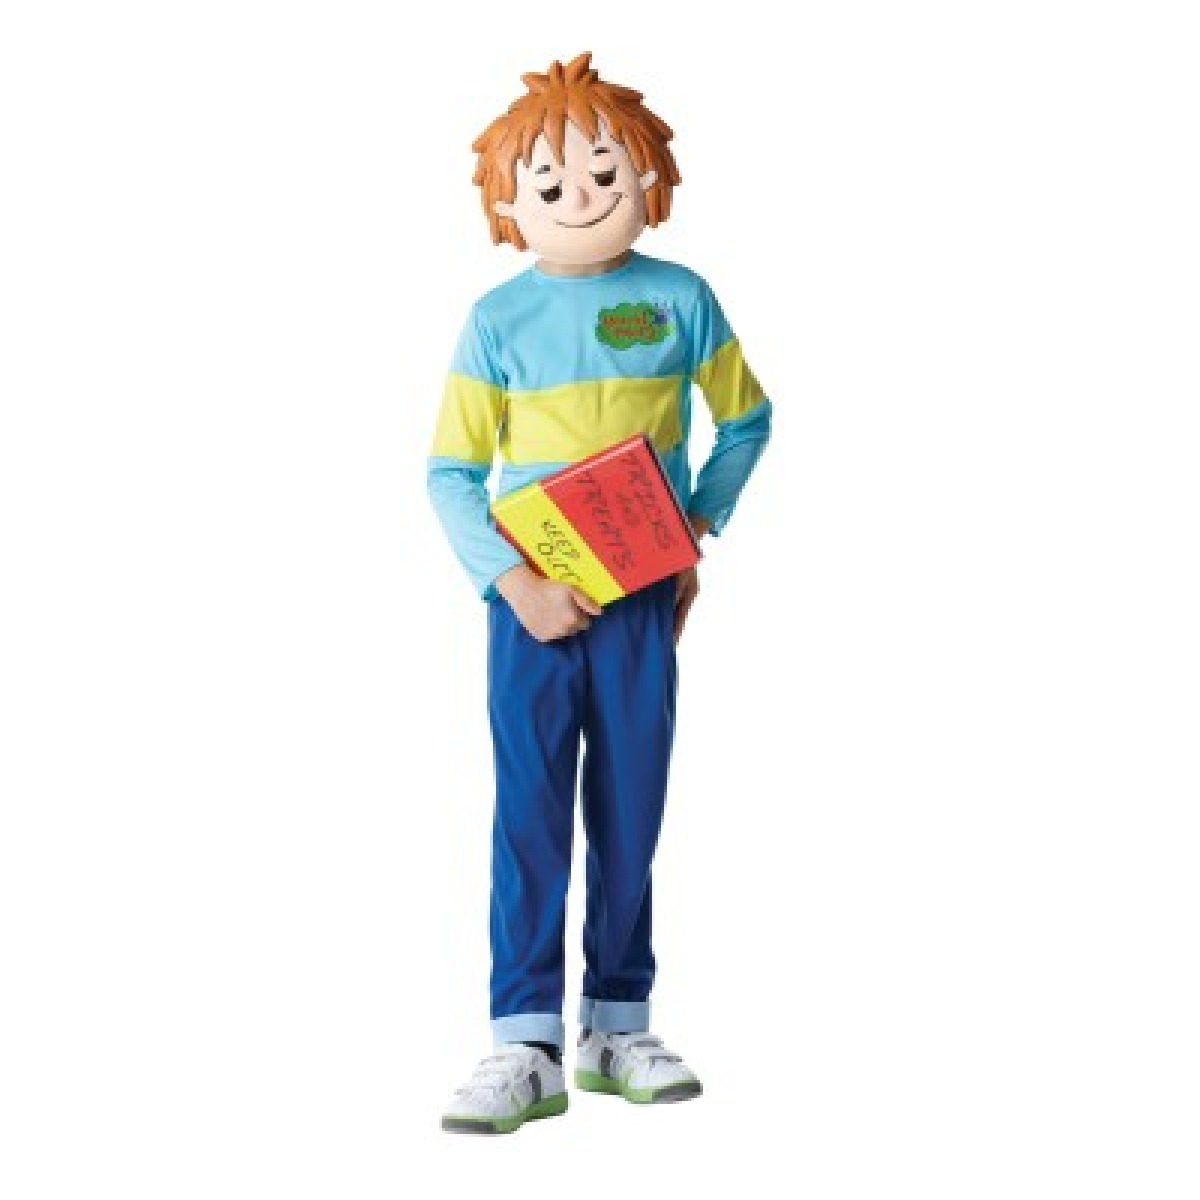 Kids Horrid Henry Costume Boys World Book Day Costume